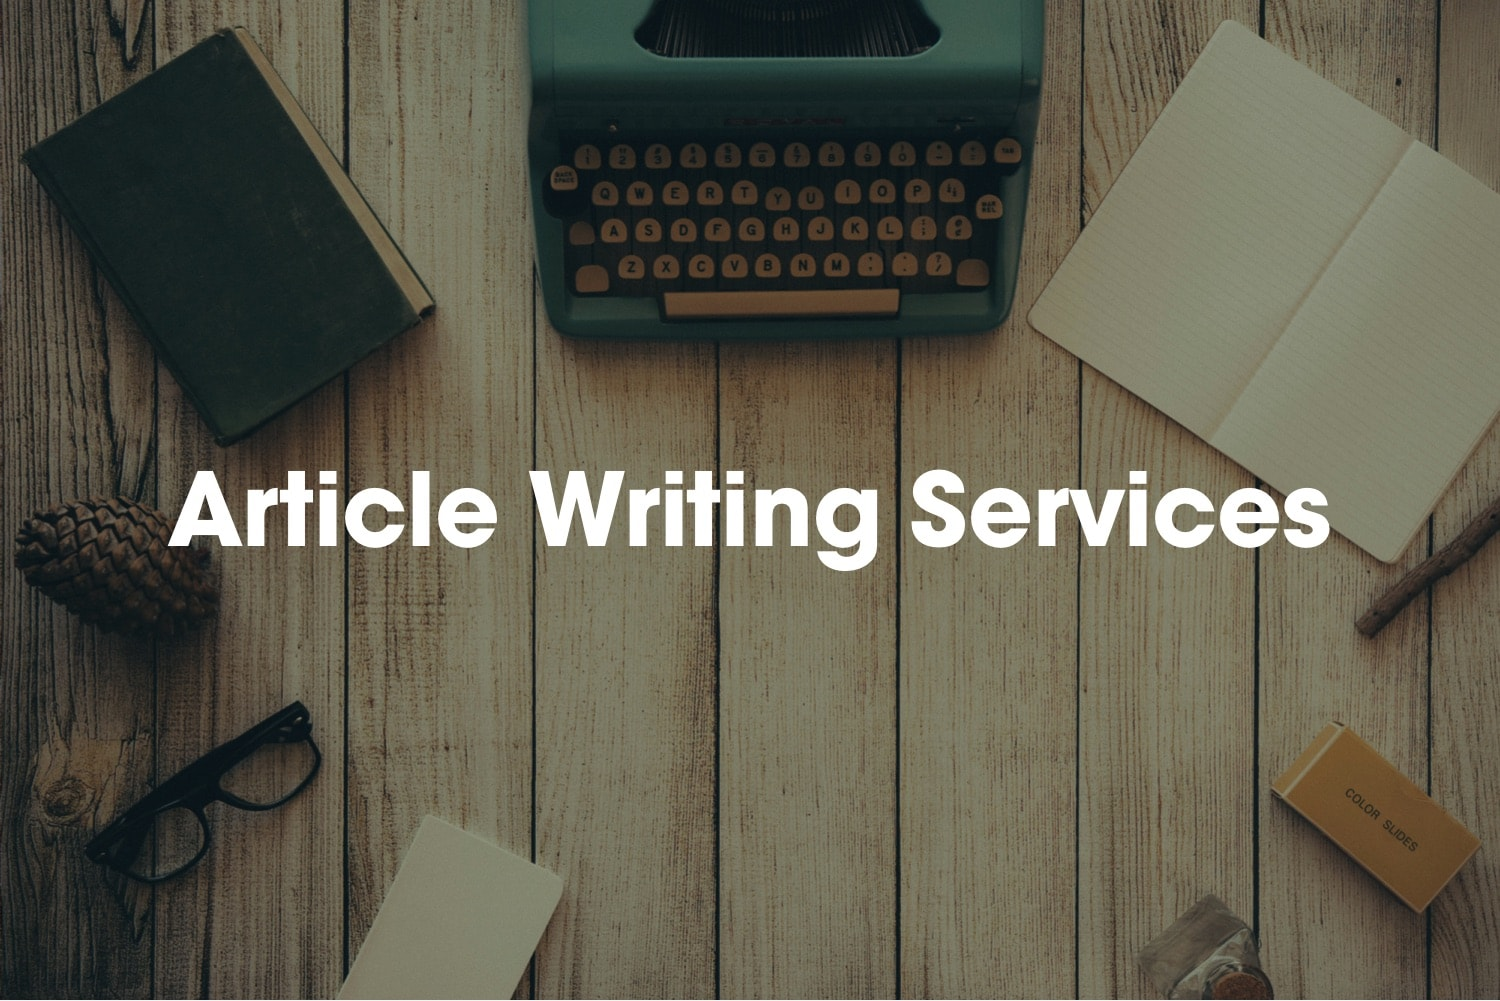 Become a freelance writer and get paid working online!